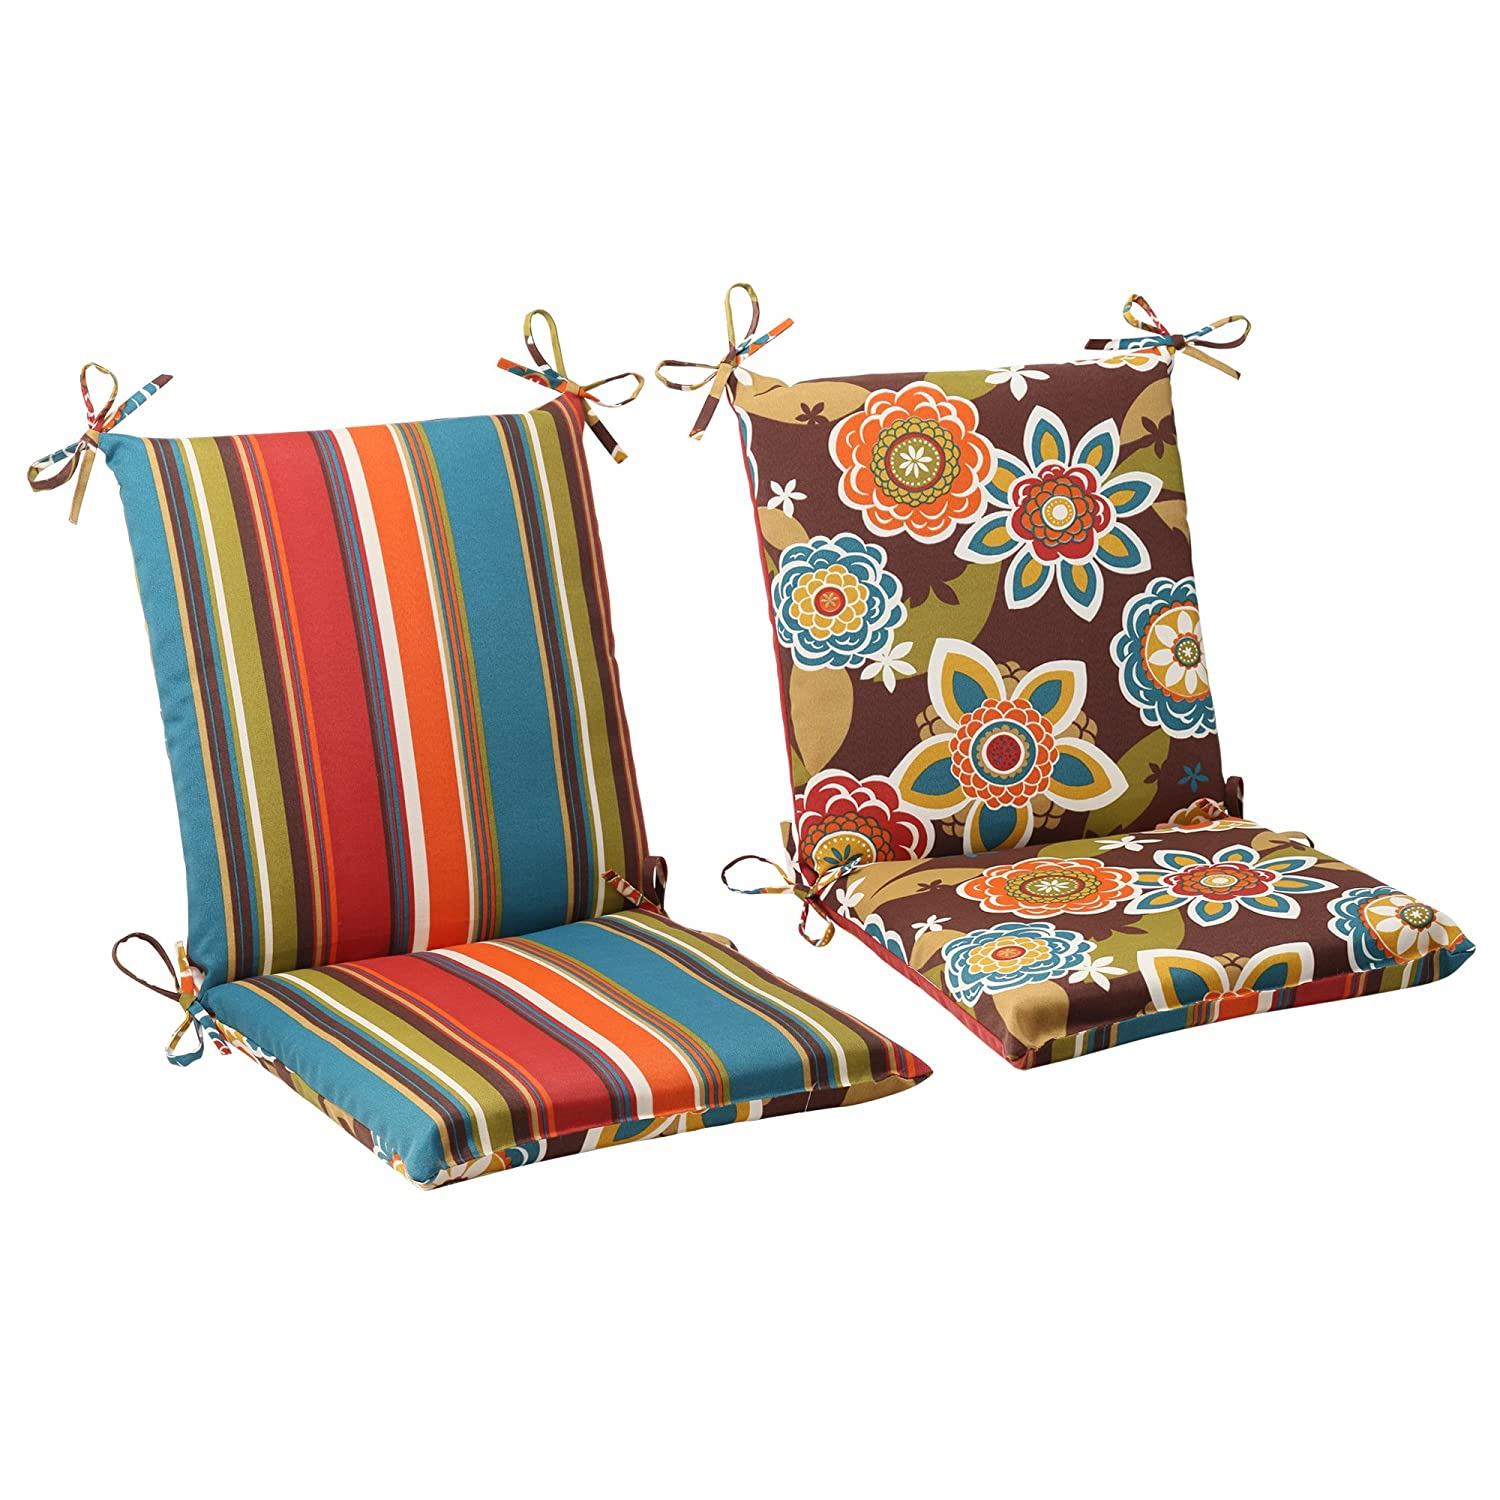 Fabric patio seat covers